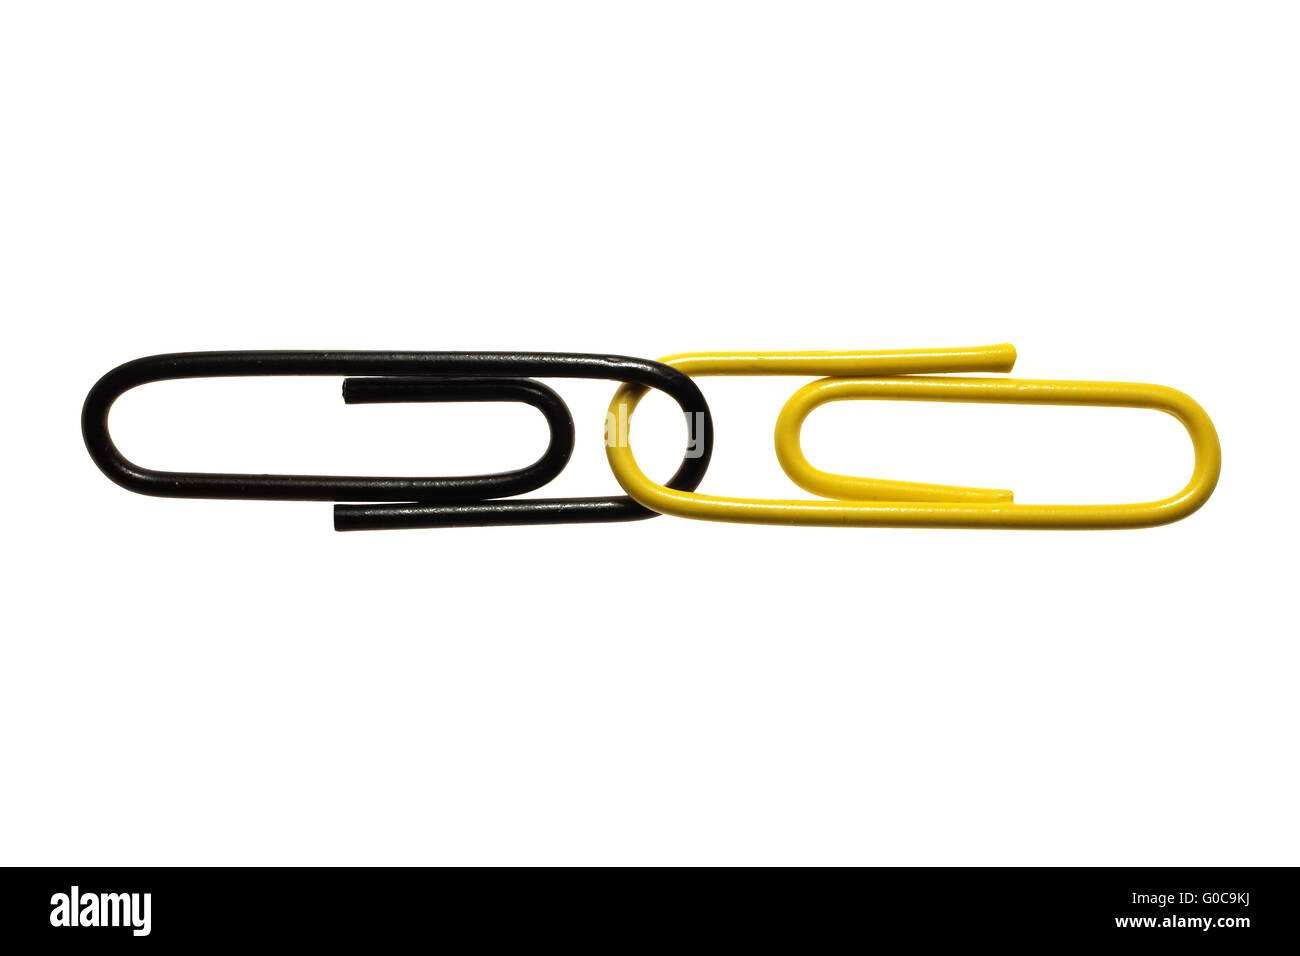 Black and yellow paper clips, symbolic image - Stock Image